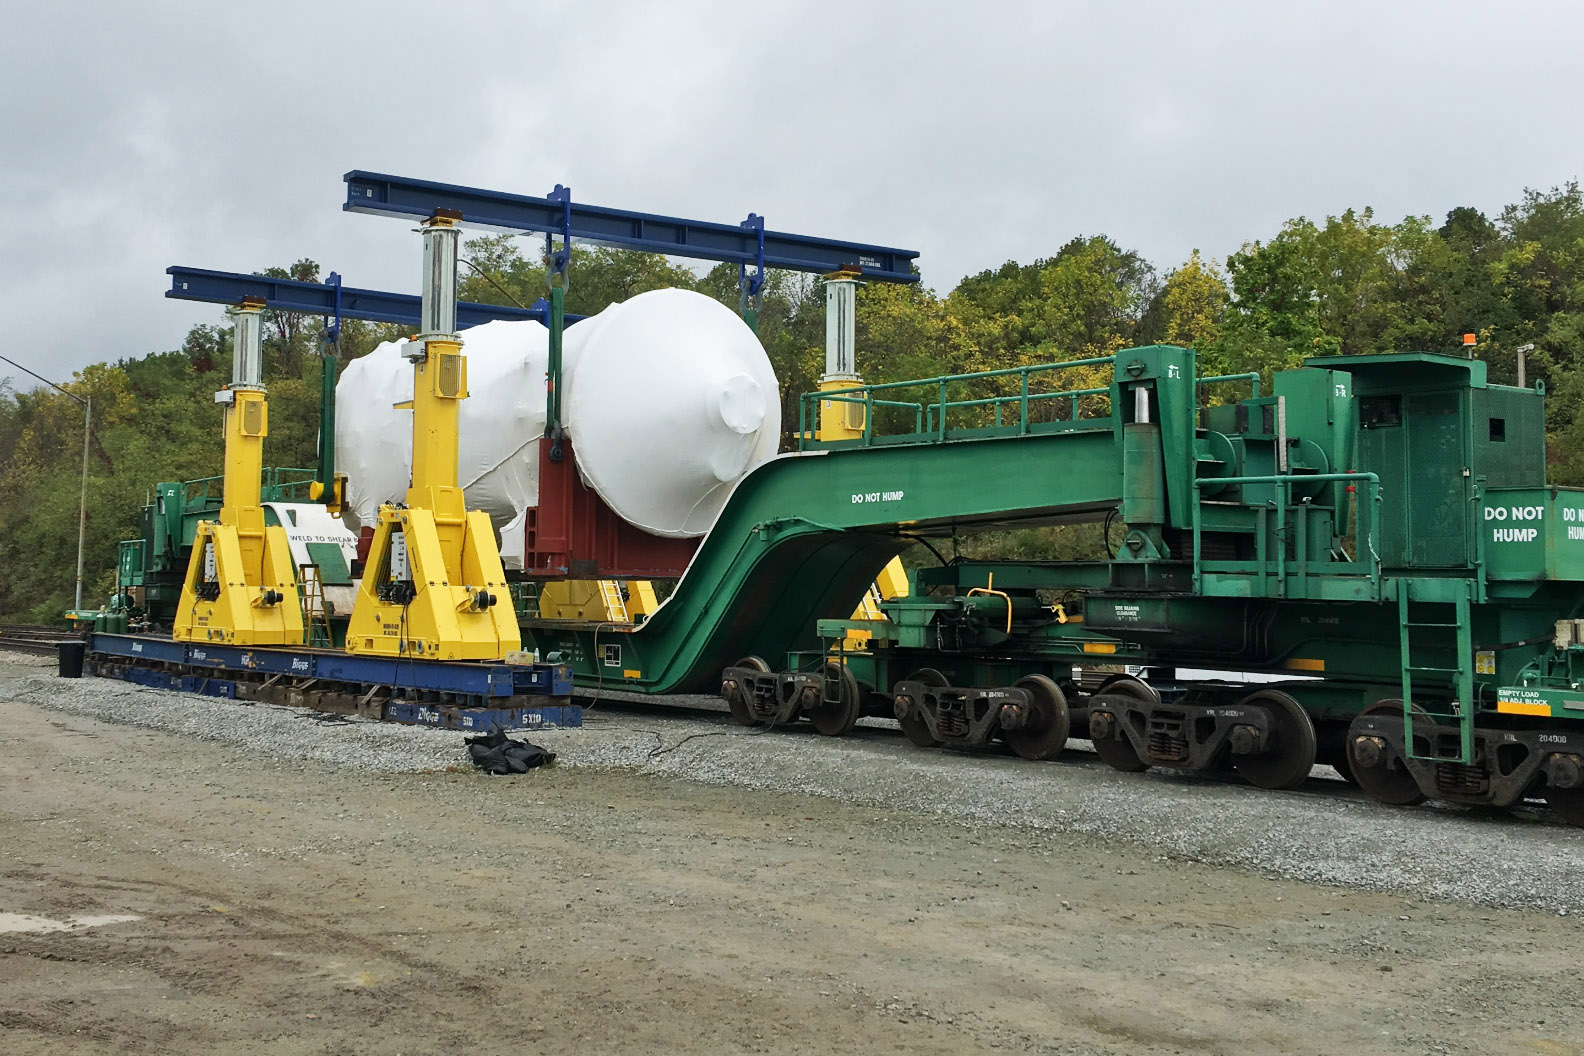 Specialized unloading rig for turbines & generators.